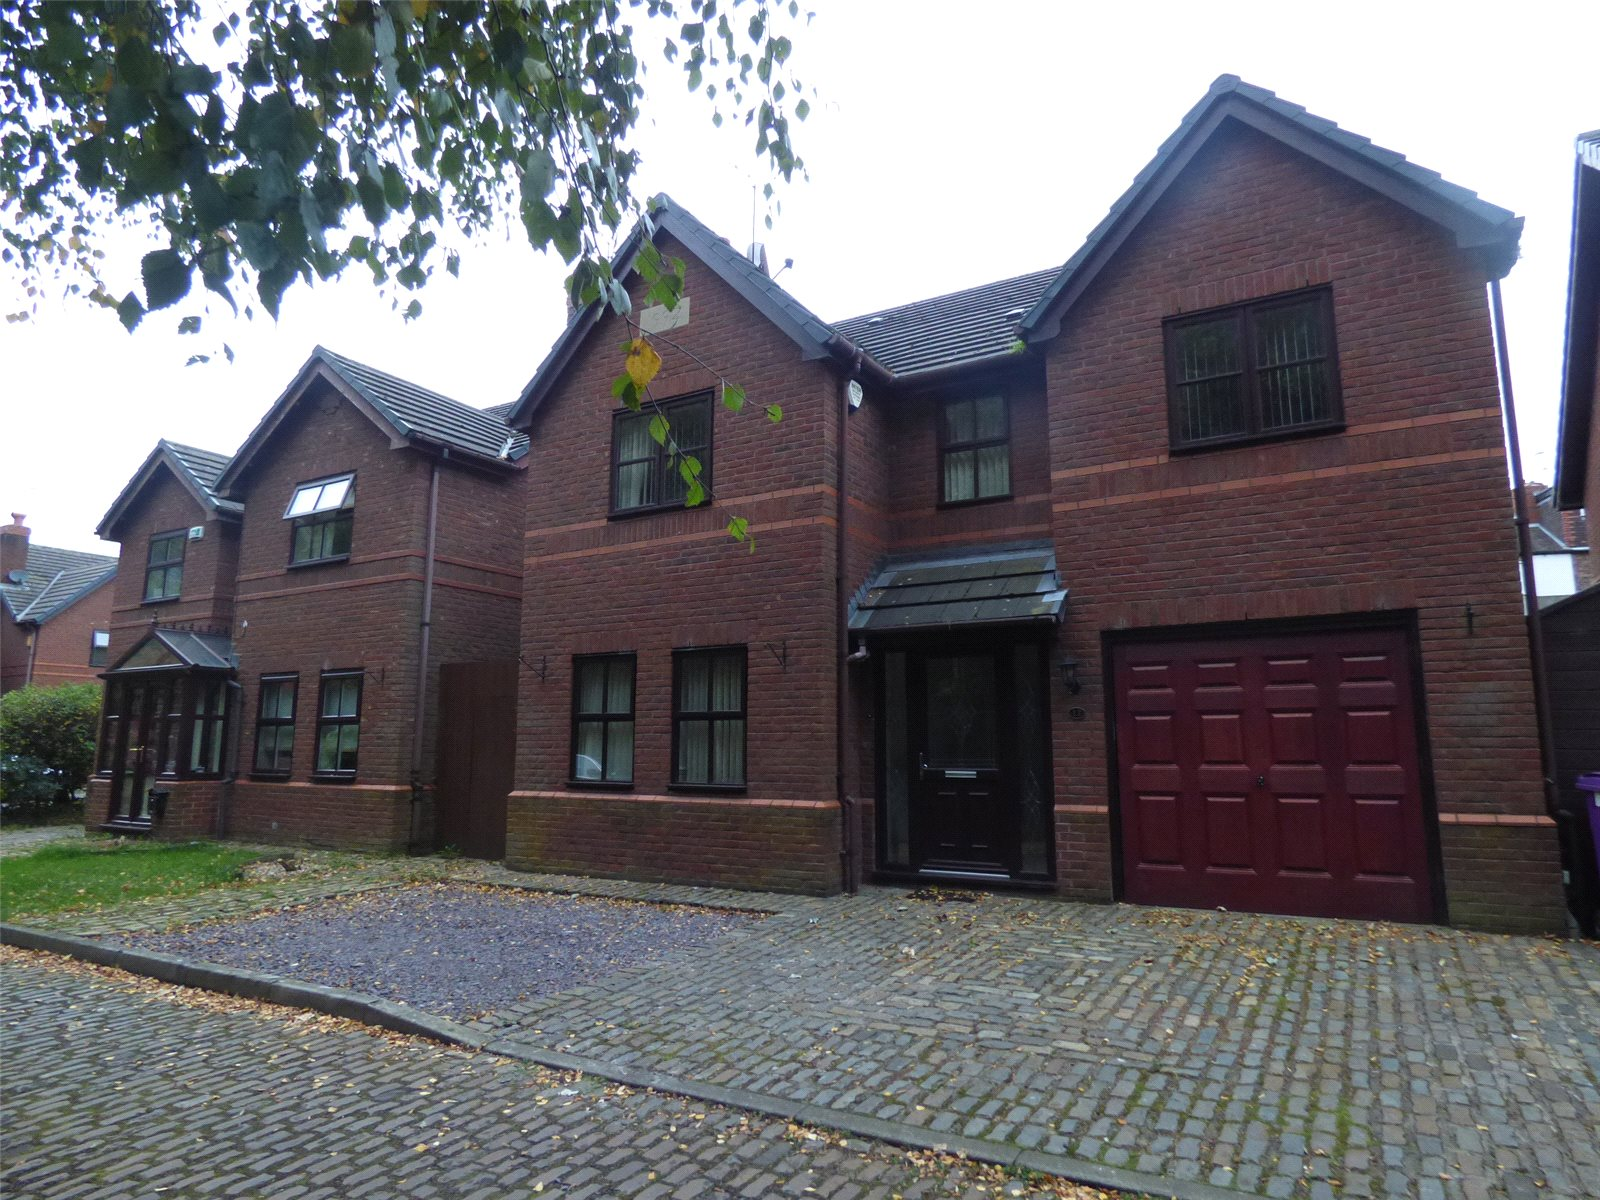 4 Bedrooms Detached House for sale in Birch Tree Court, Liverpool, Merseyside, L12